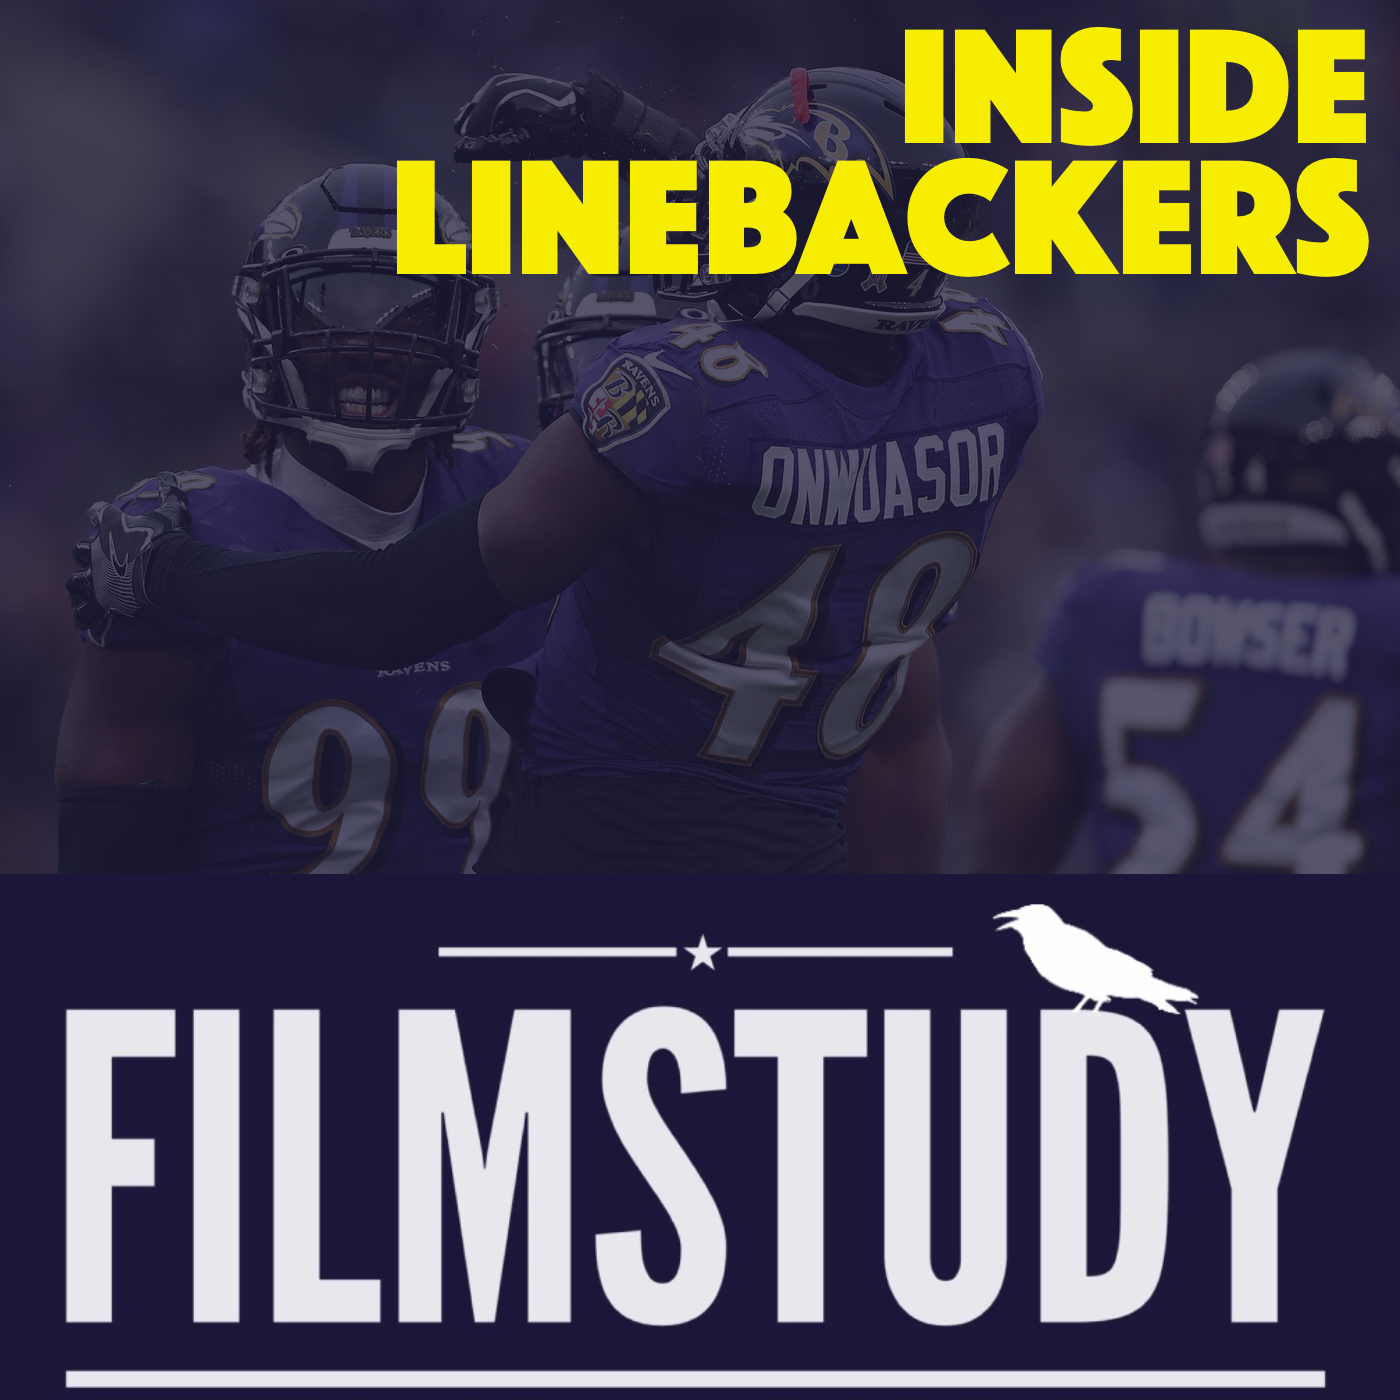 Positional Review : Inside Linebacker